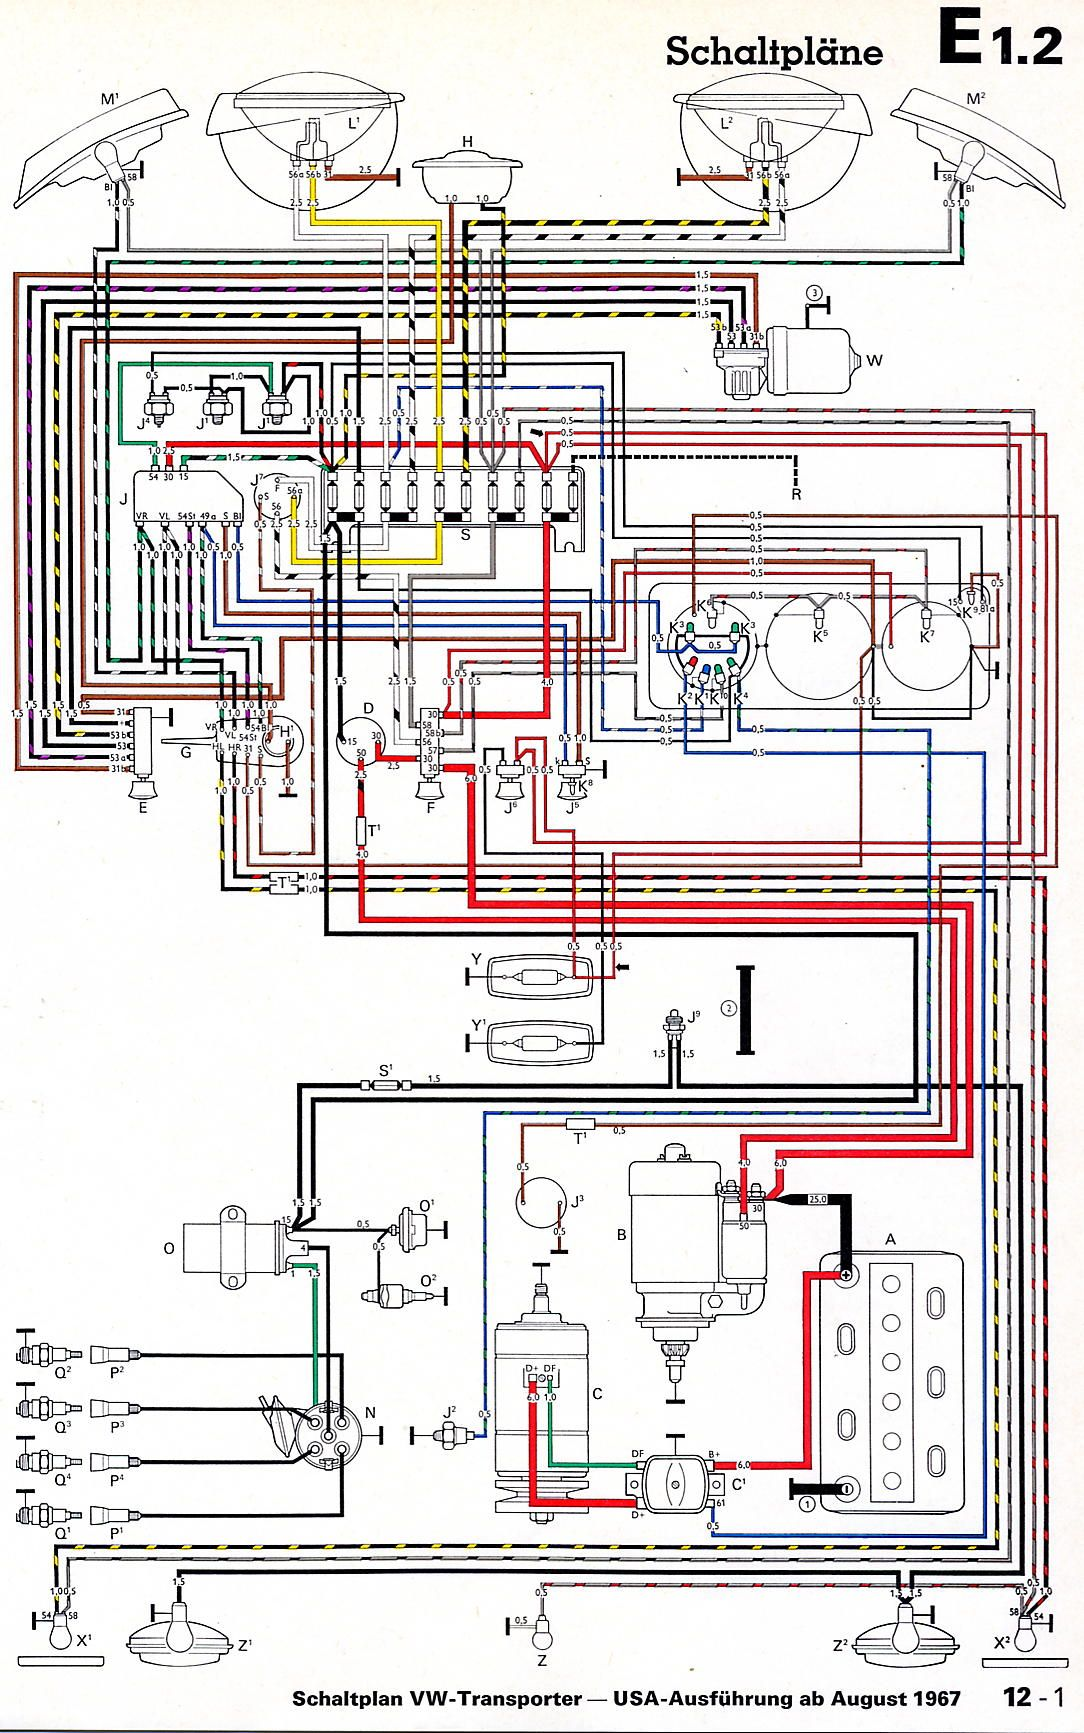 1968 VW Bus Wiring Diagram | Vw bus, Diagram, Electrical circuit diagramPinterest